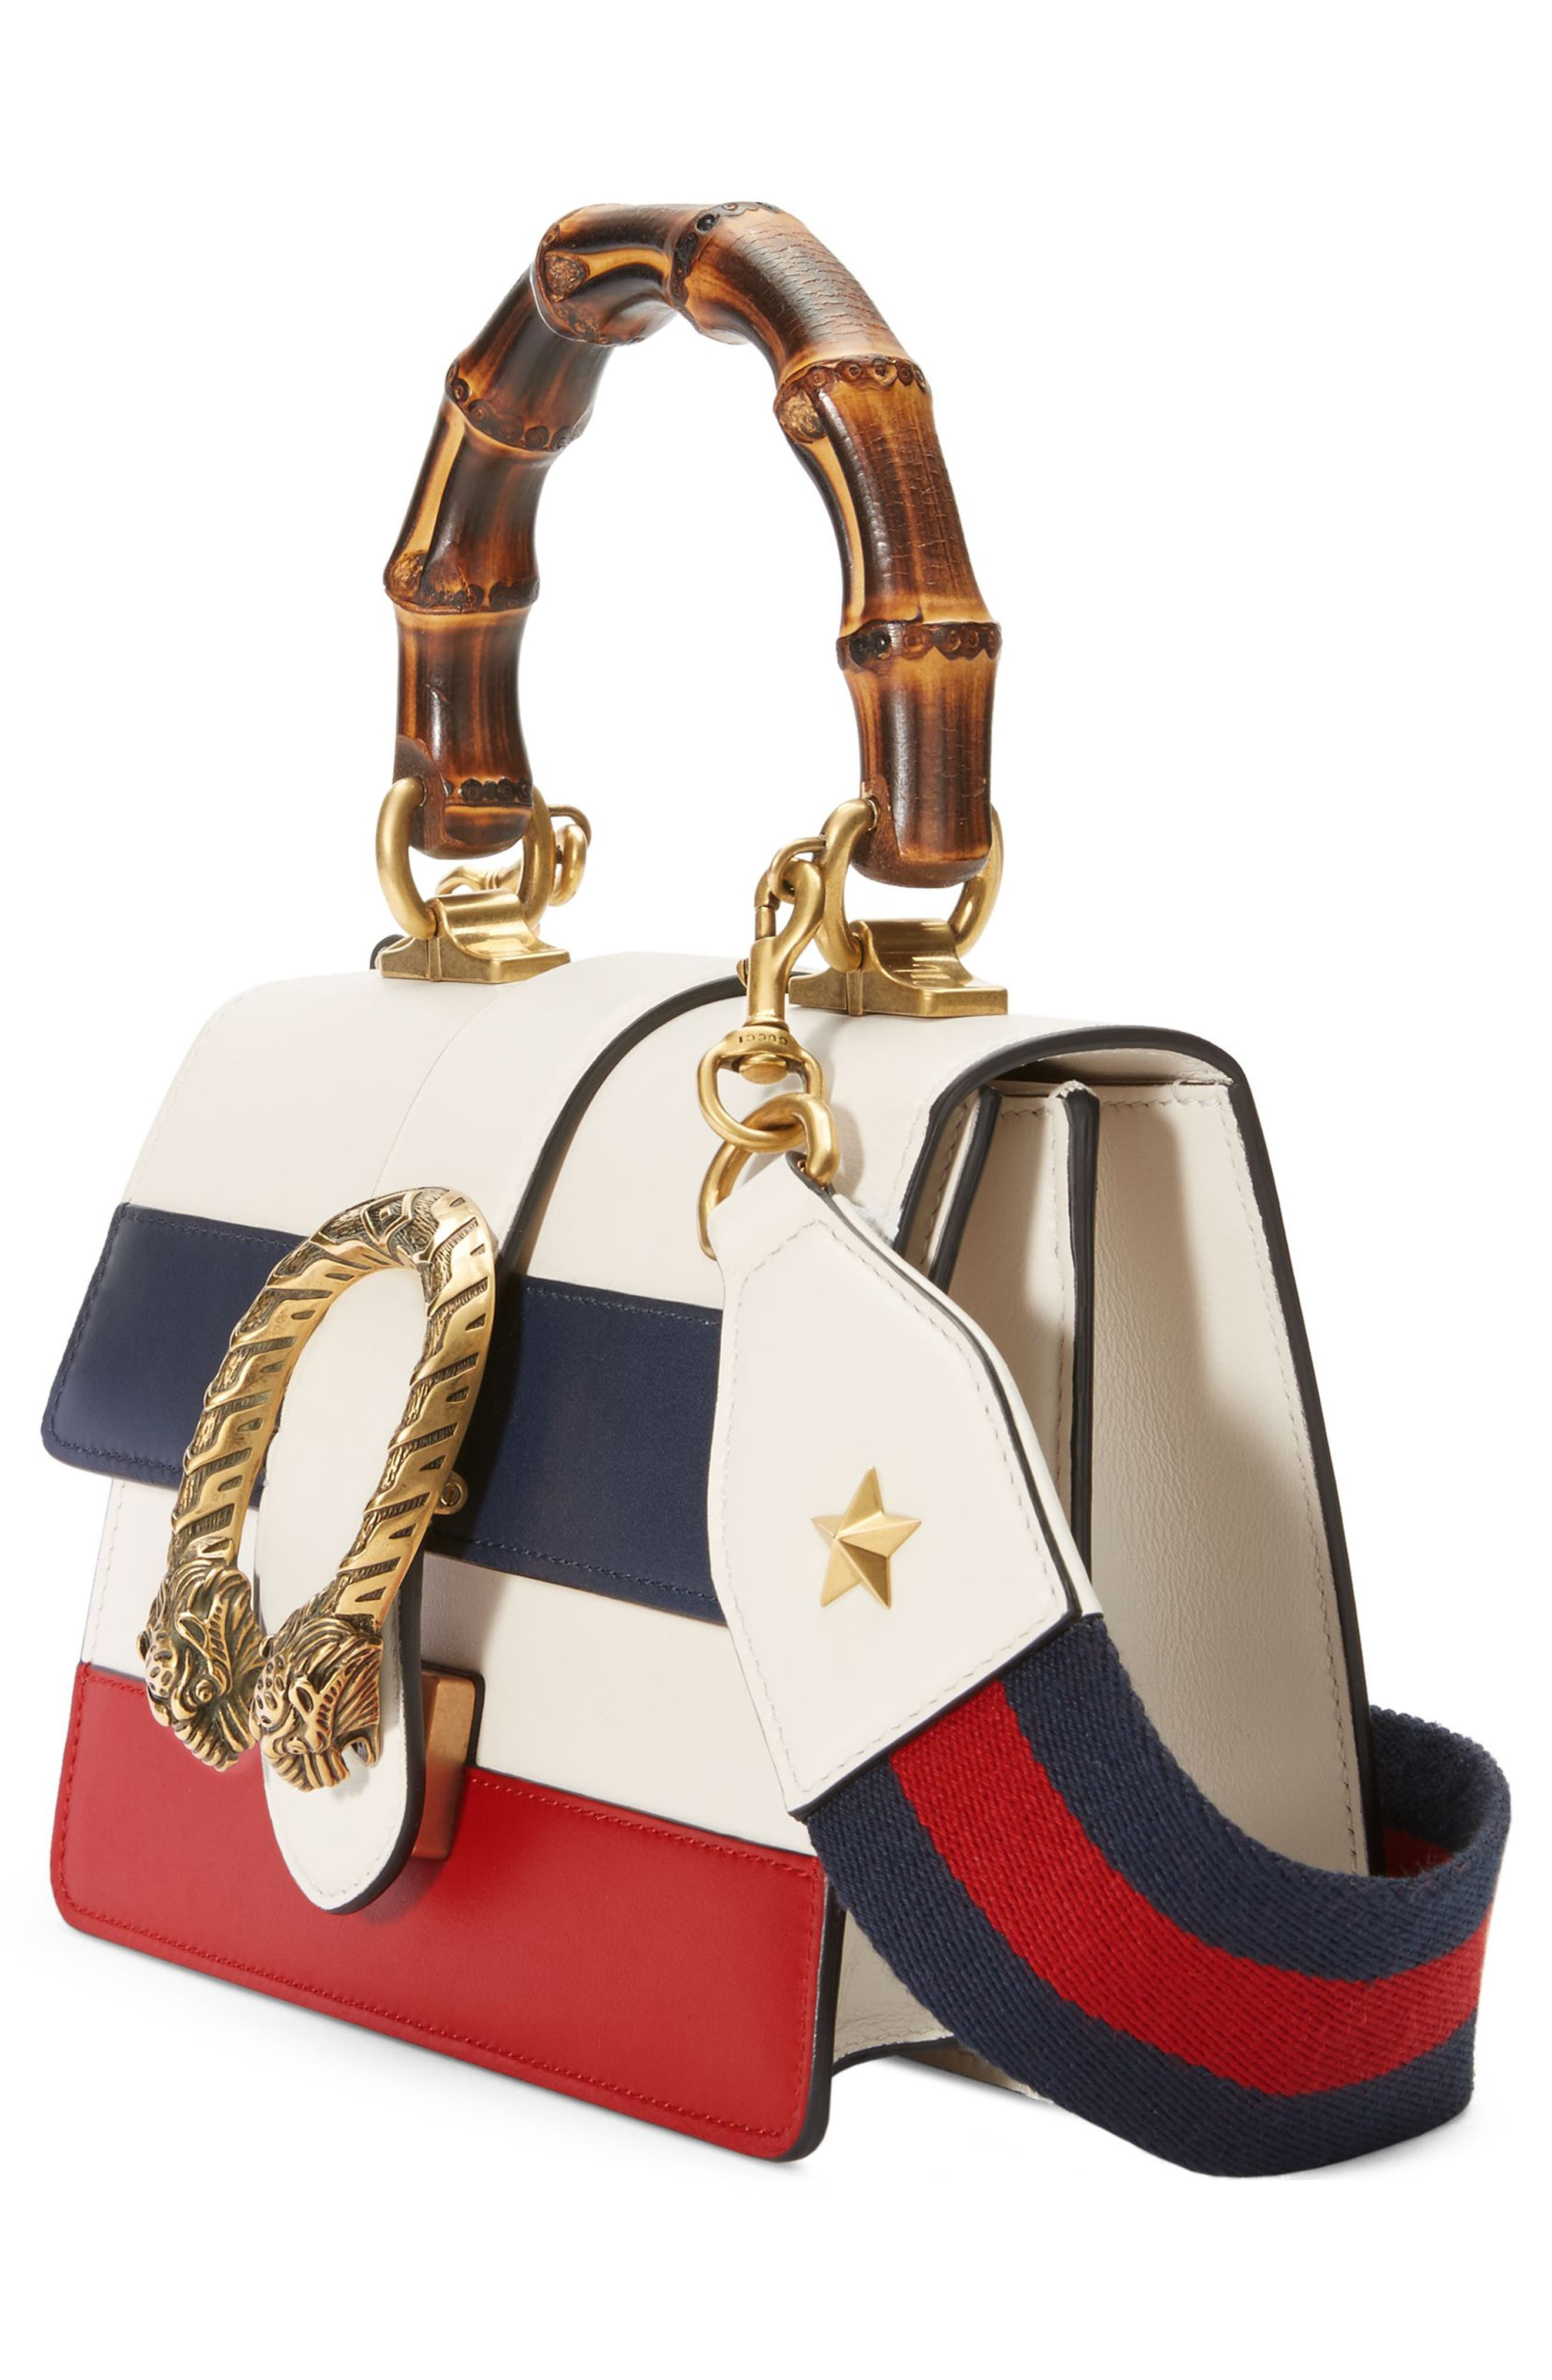 Mini Dionysus Leather Top Handle Satchel,                             Alternate thumbnail 4, color,                             White/ Blue/ Hibiscus Red